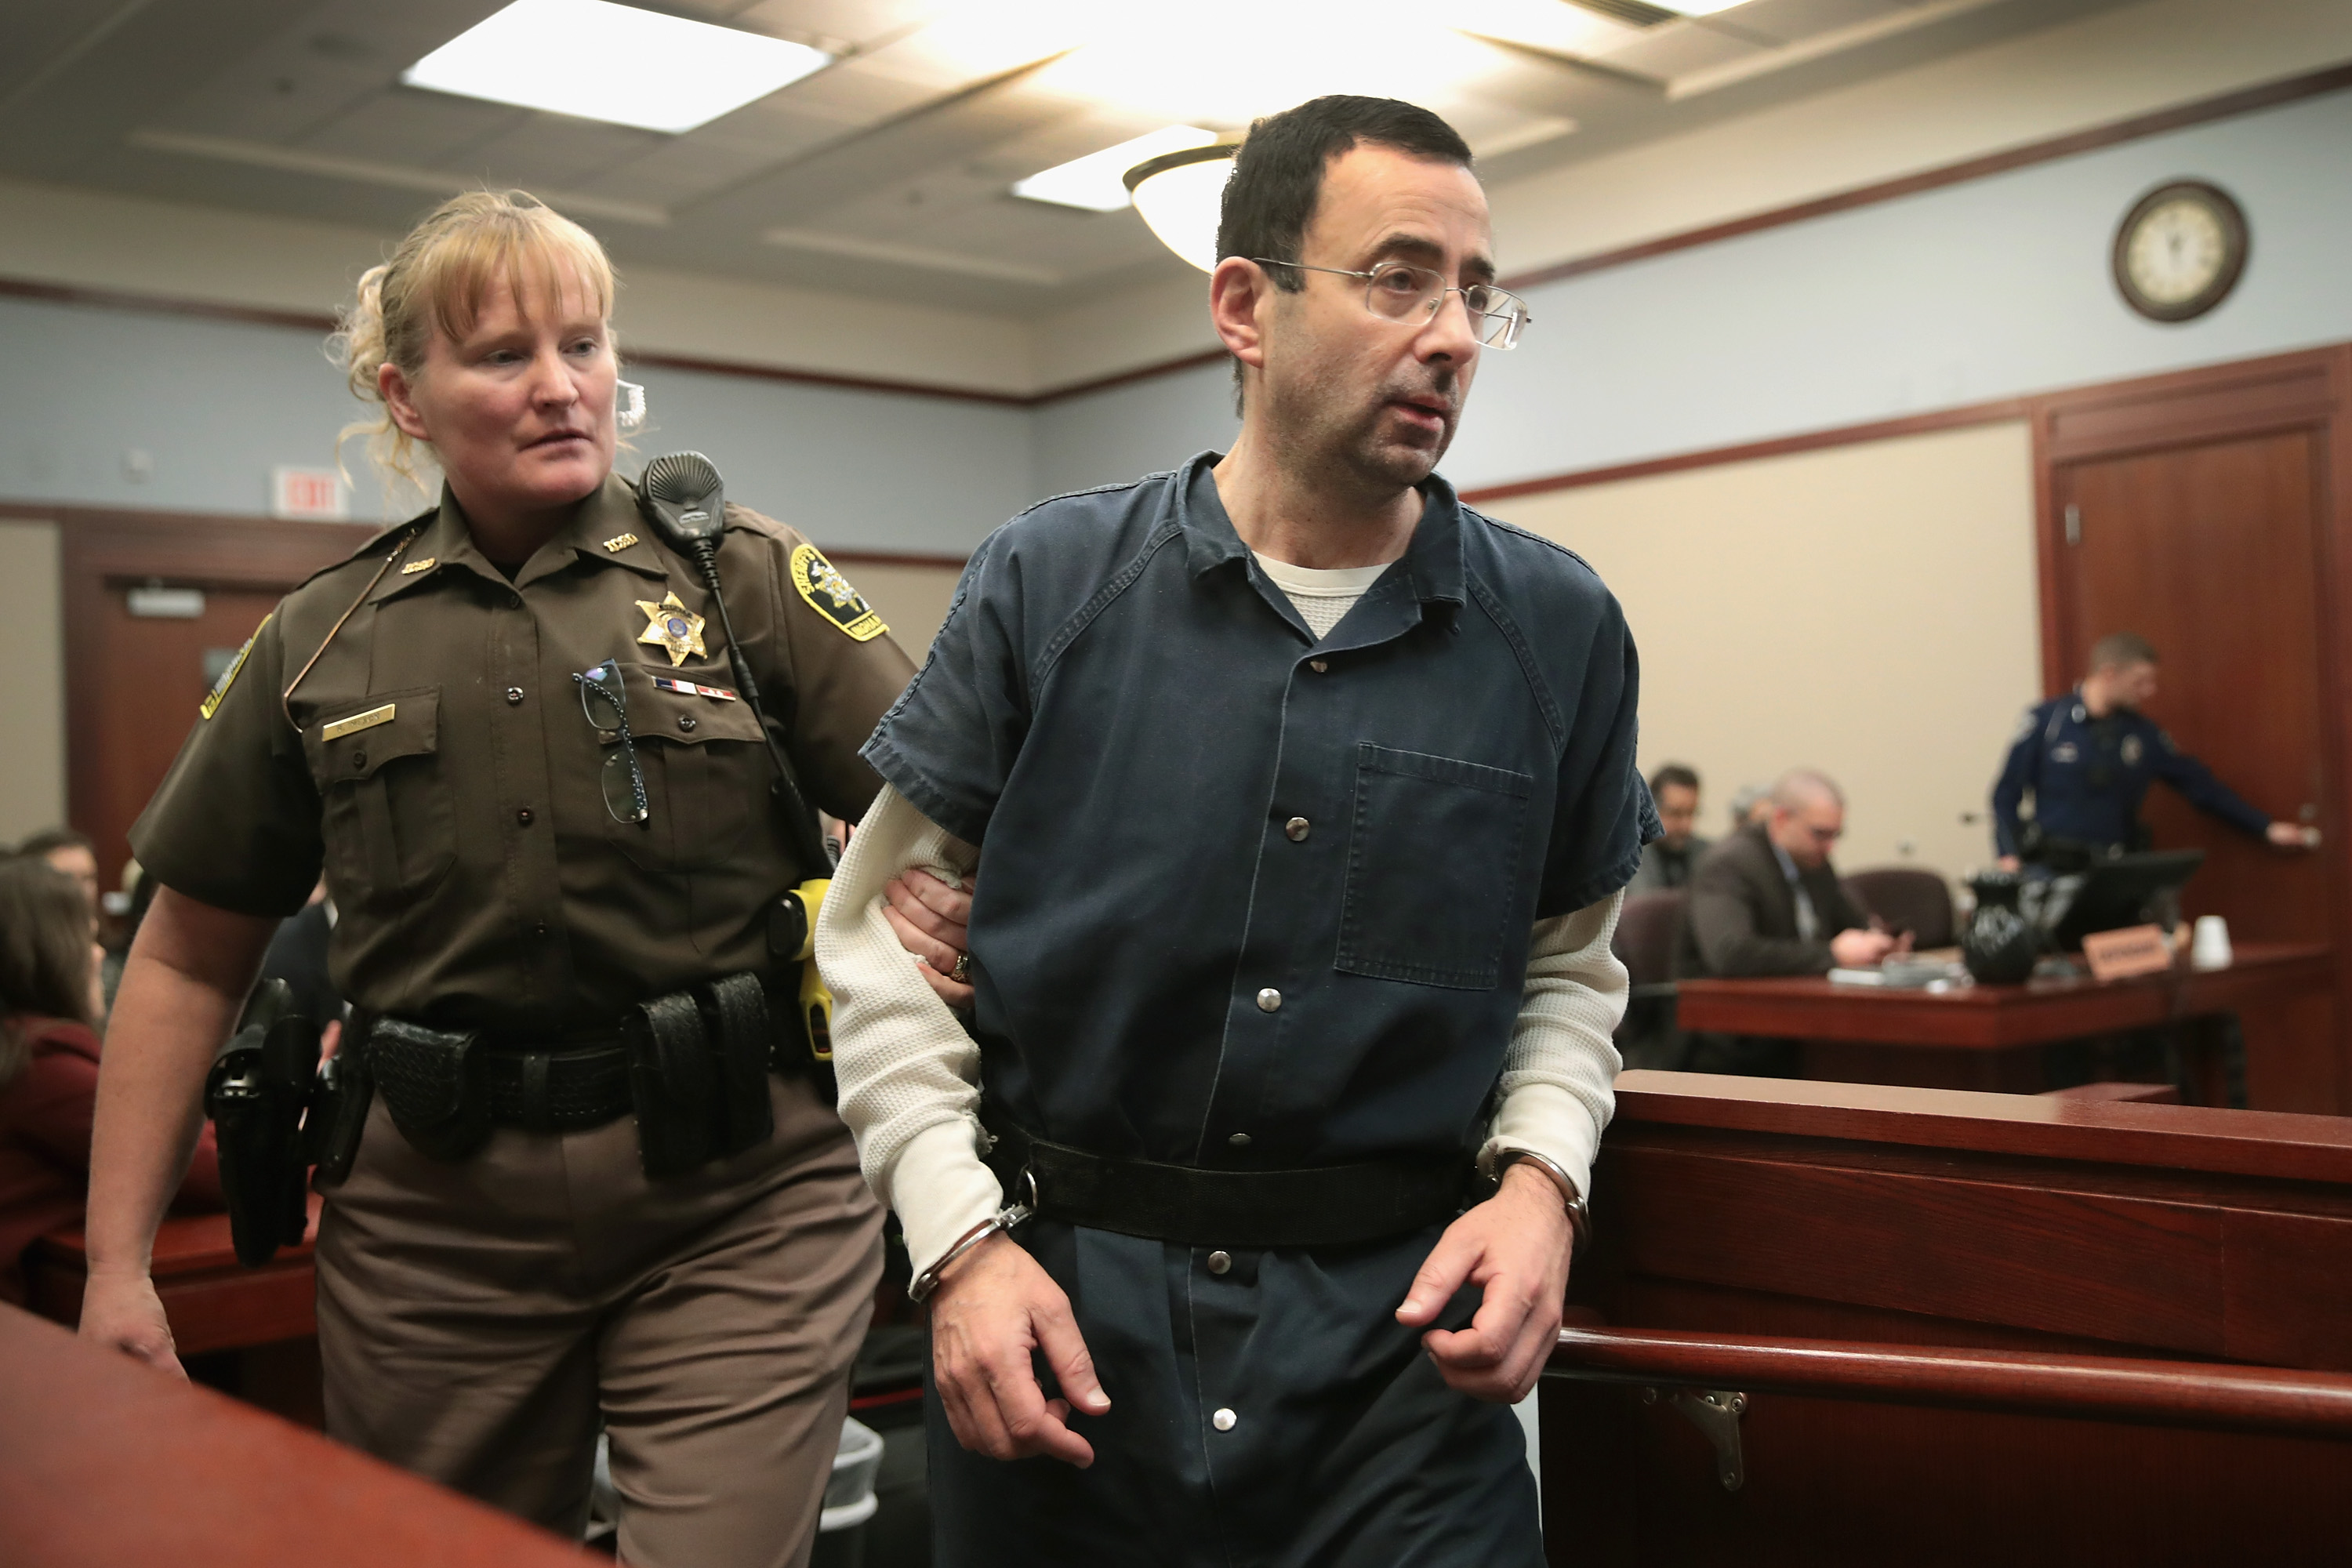 Larry Nassar appears in court to listen to victim impact statements during his sentencing hearing after being accused of molesting more than 100 girls while he was a physician for USA Gymnastics and Michigan State University where he had his sports-medicine practice on January 17, 2018 in Lansing, Michigan.